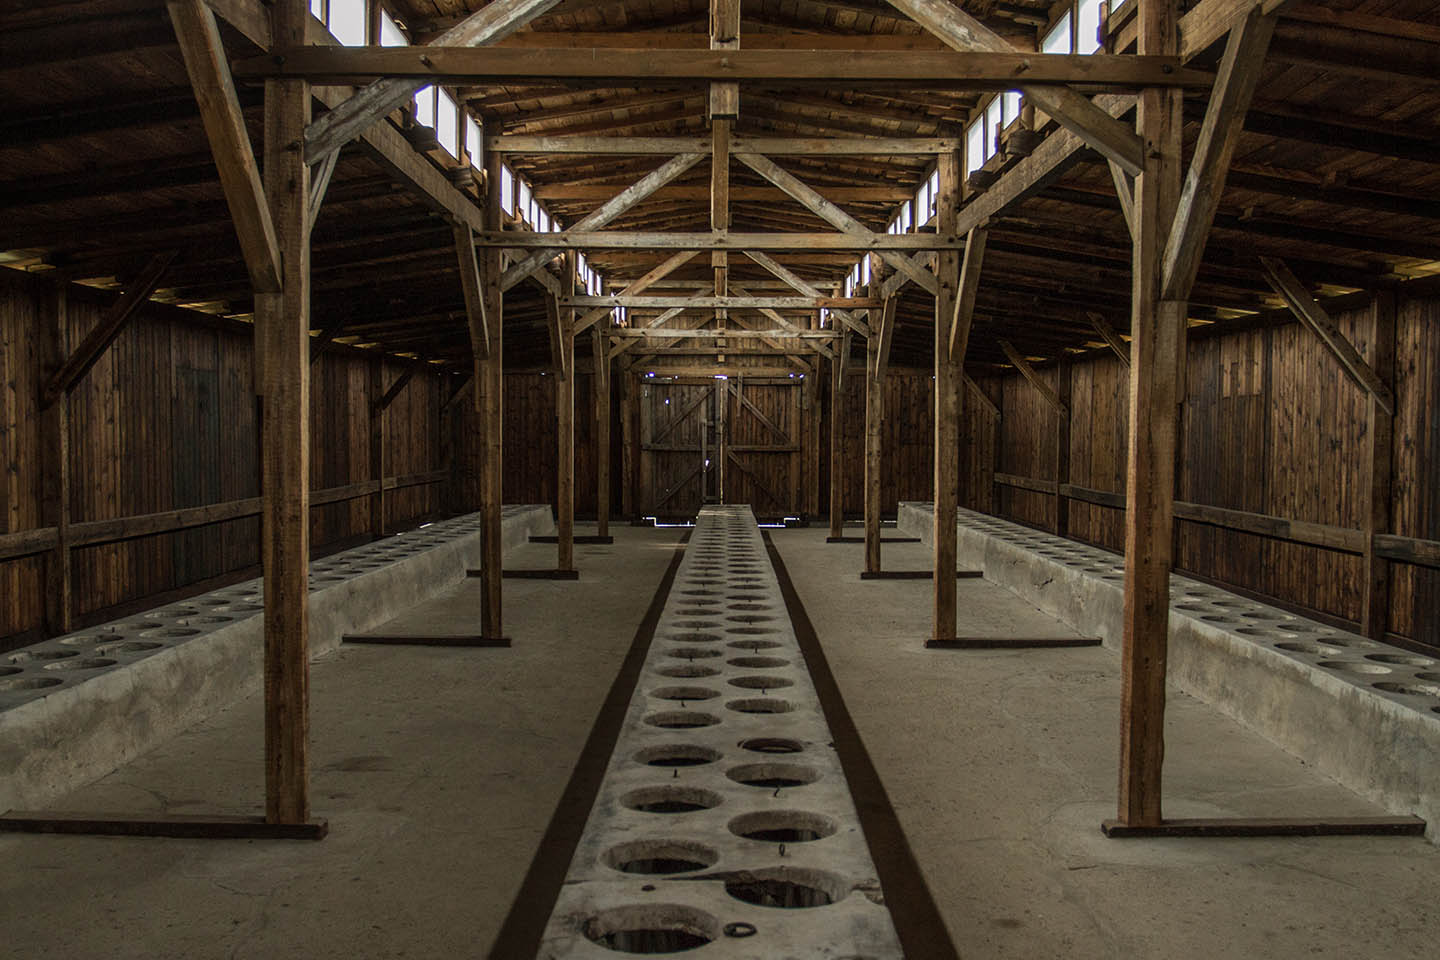 Washing room and toilets at Birkenau concentration Camp barracks / Waschräume Toiletten